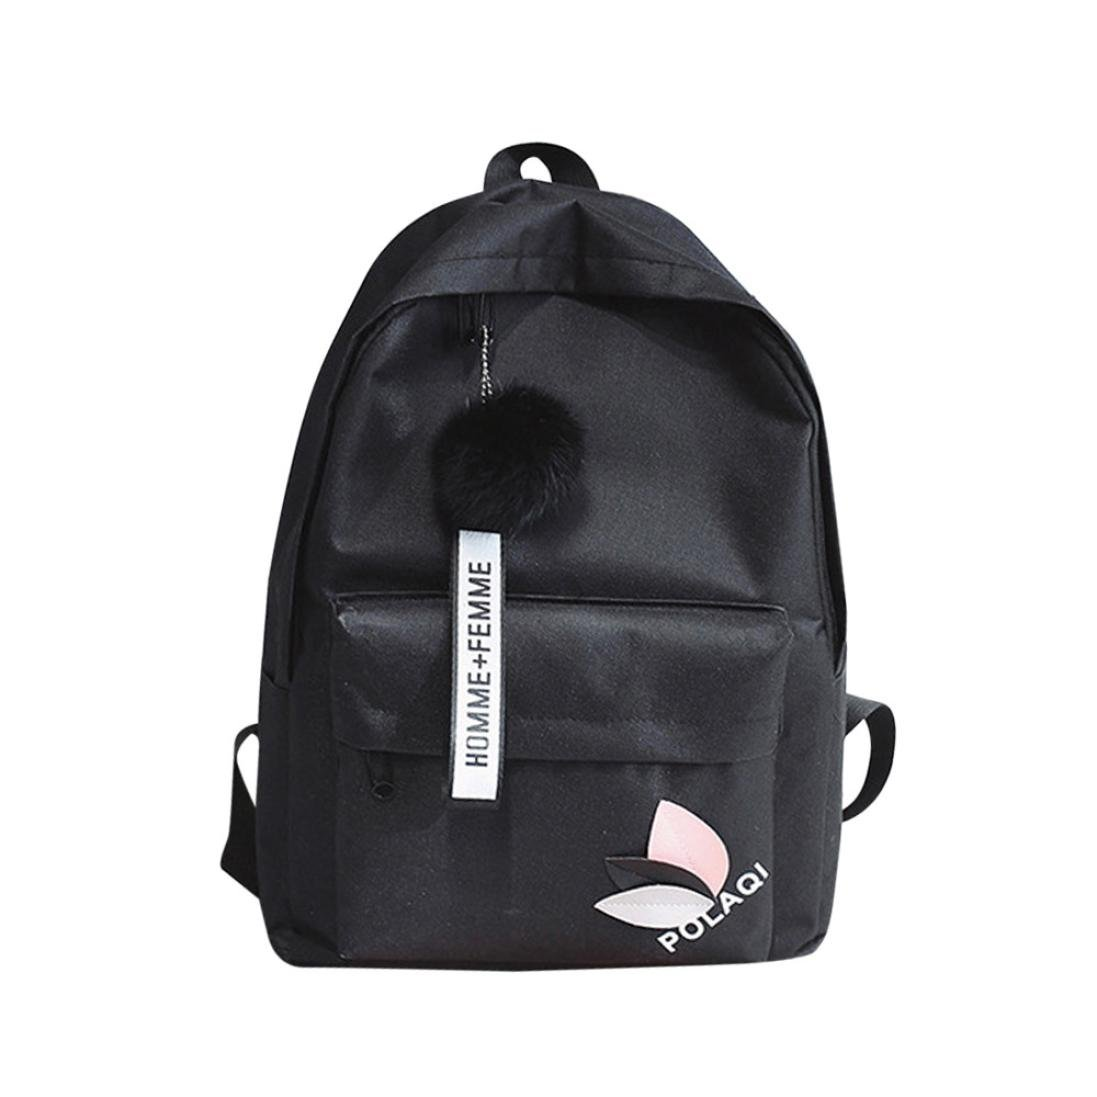 Koolee Women s Canvas Backpack with Plush Ball Fashion Girls Boy Shoulder  Bag (Black)  Sports   Outdoors 56956f4135